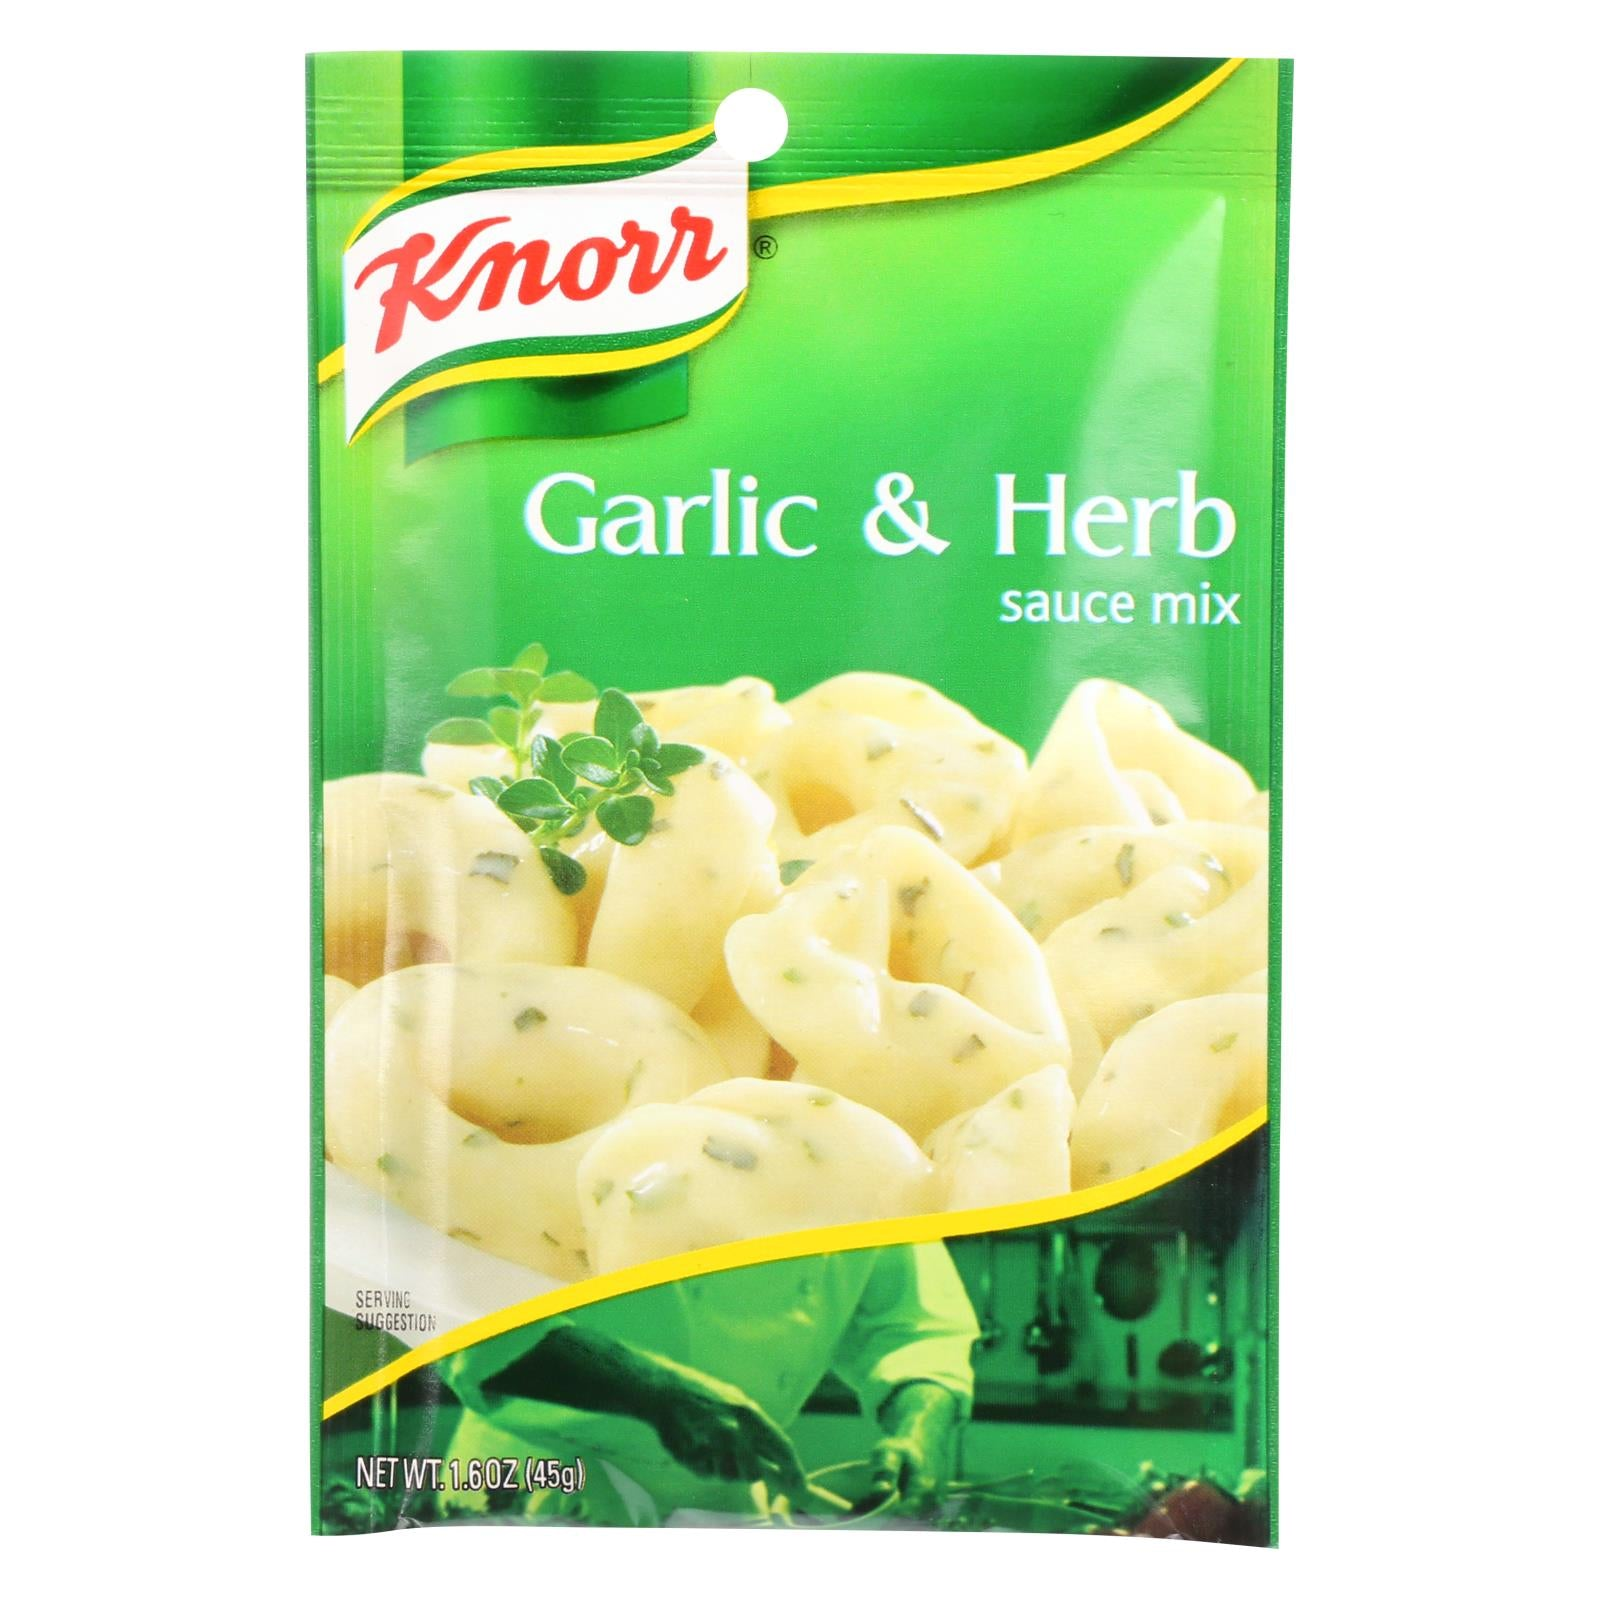 Knorr Sauce Mix - Garlic And Herb - 1.6 Oz - Case Of 12 HG0101089